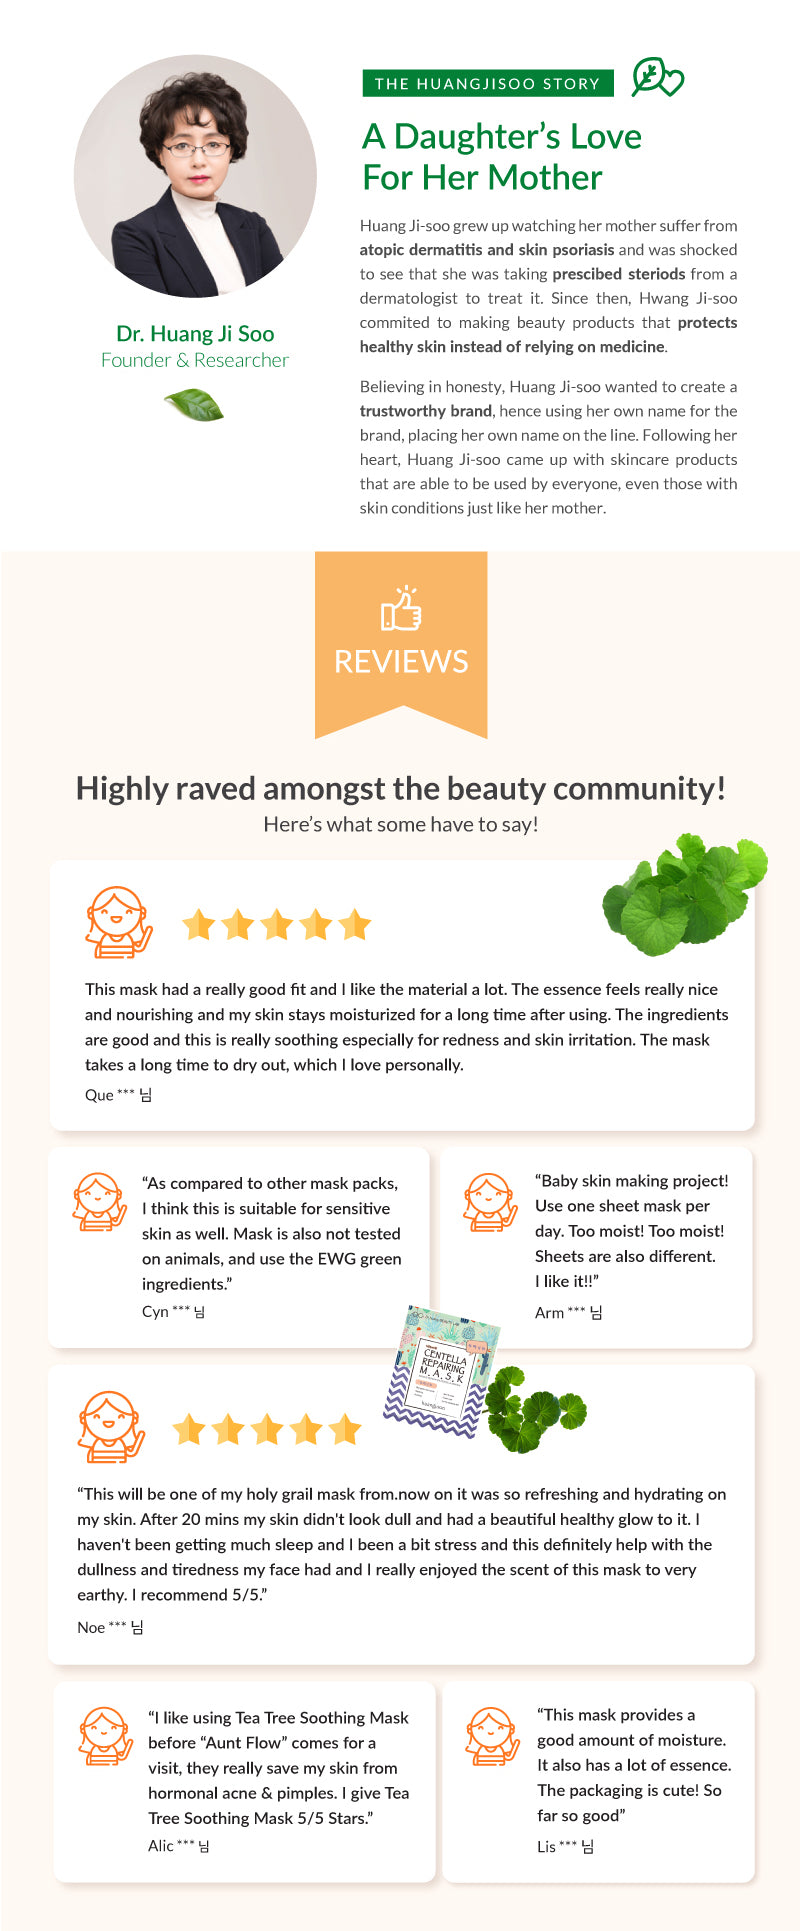 Dr. Huangjisoo created the brand Huang Ji Soo out of trying to help her mother. Not only the skincare were created with organic ingredients for sensitive skin but also with skin problems. Check out our reviews that have tried the mask before!